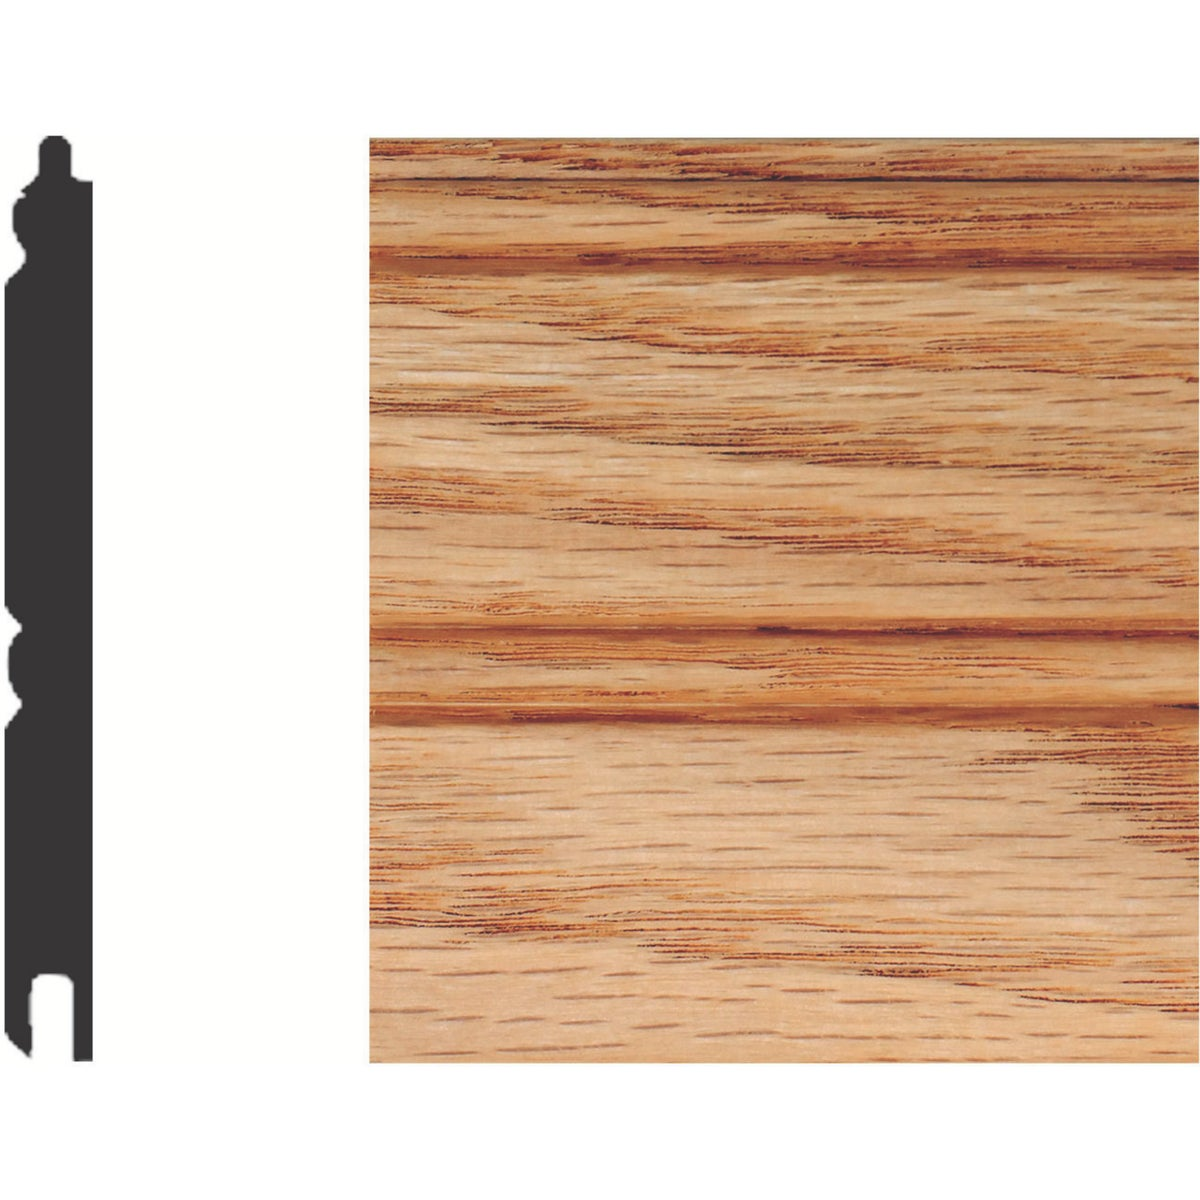 "5/16X3-1/8""X8' WAINSCOT - W96O by House Of Fara Inc"